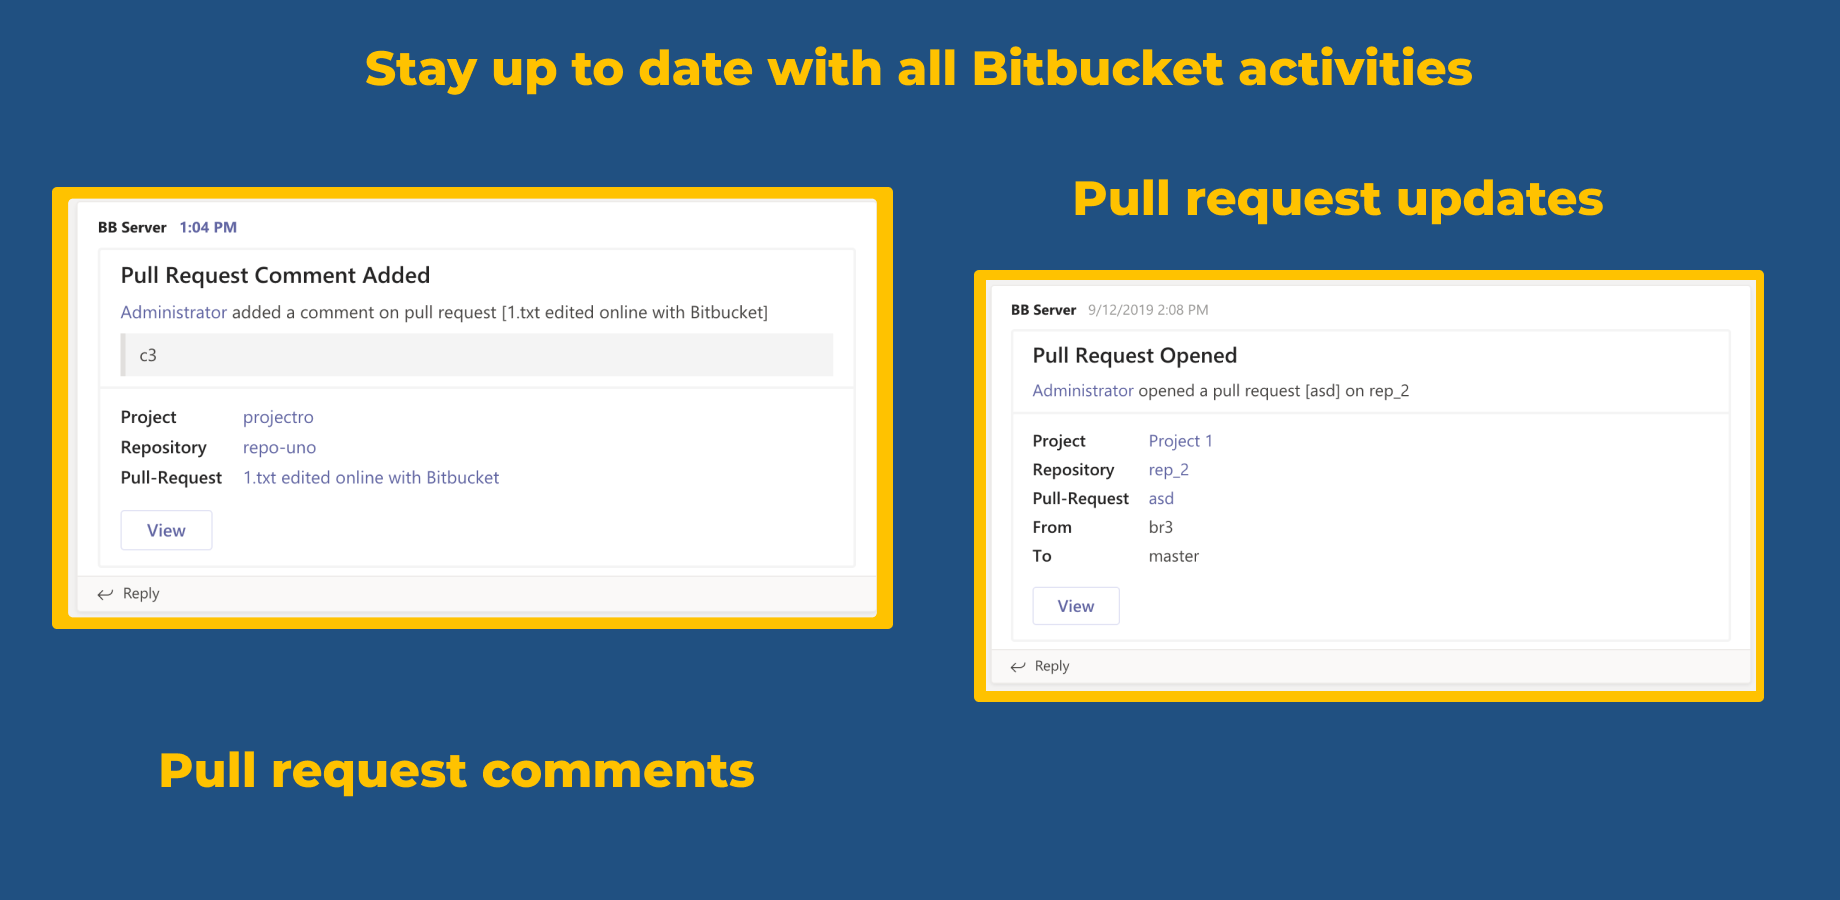 Stay up to date with all Bitbucket activities